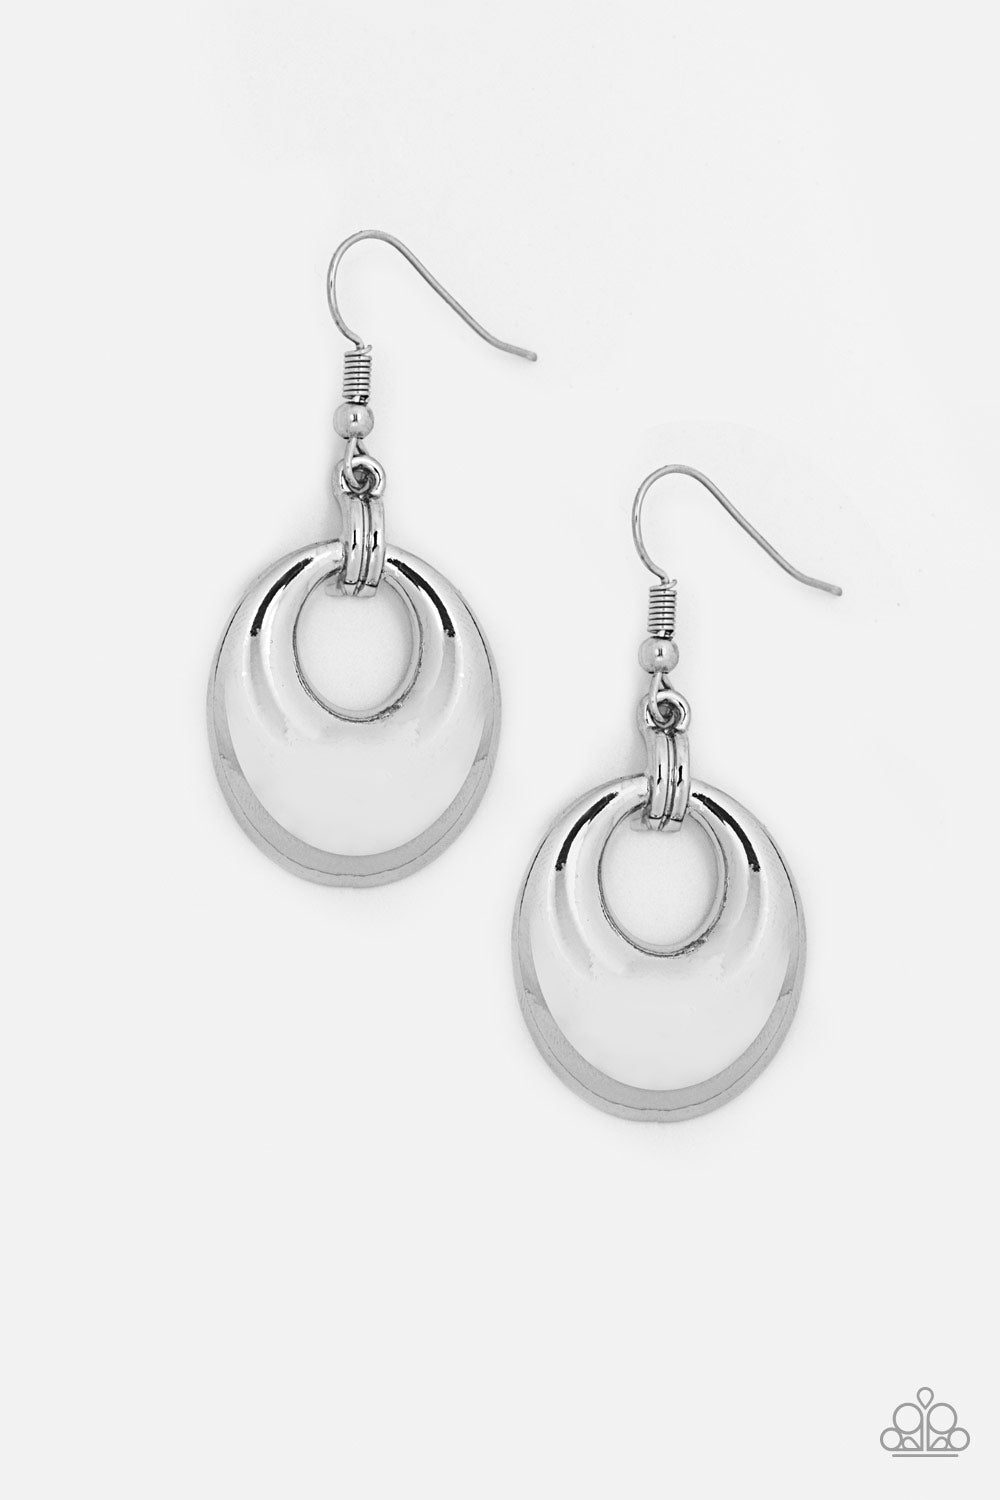 Paparazzi Accessories - Paparazzi In The BRIGHT Place At The BRIGHT Time - Silver Earring - Earrings